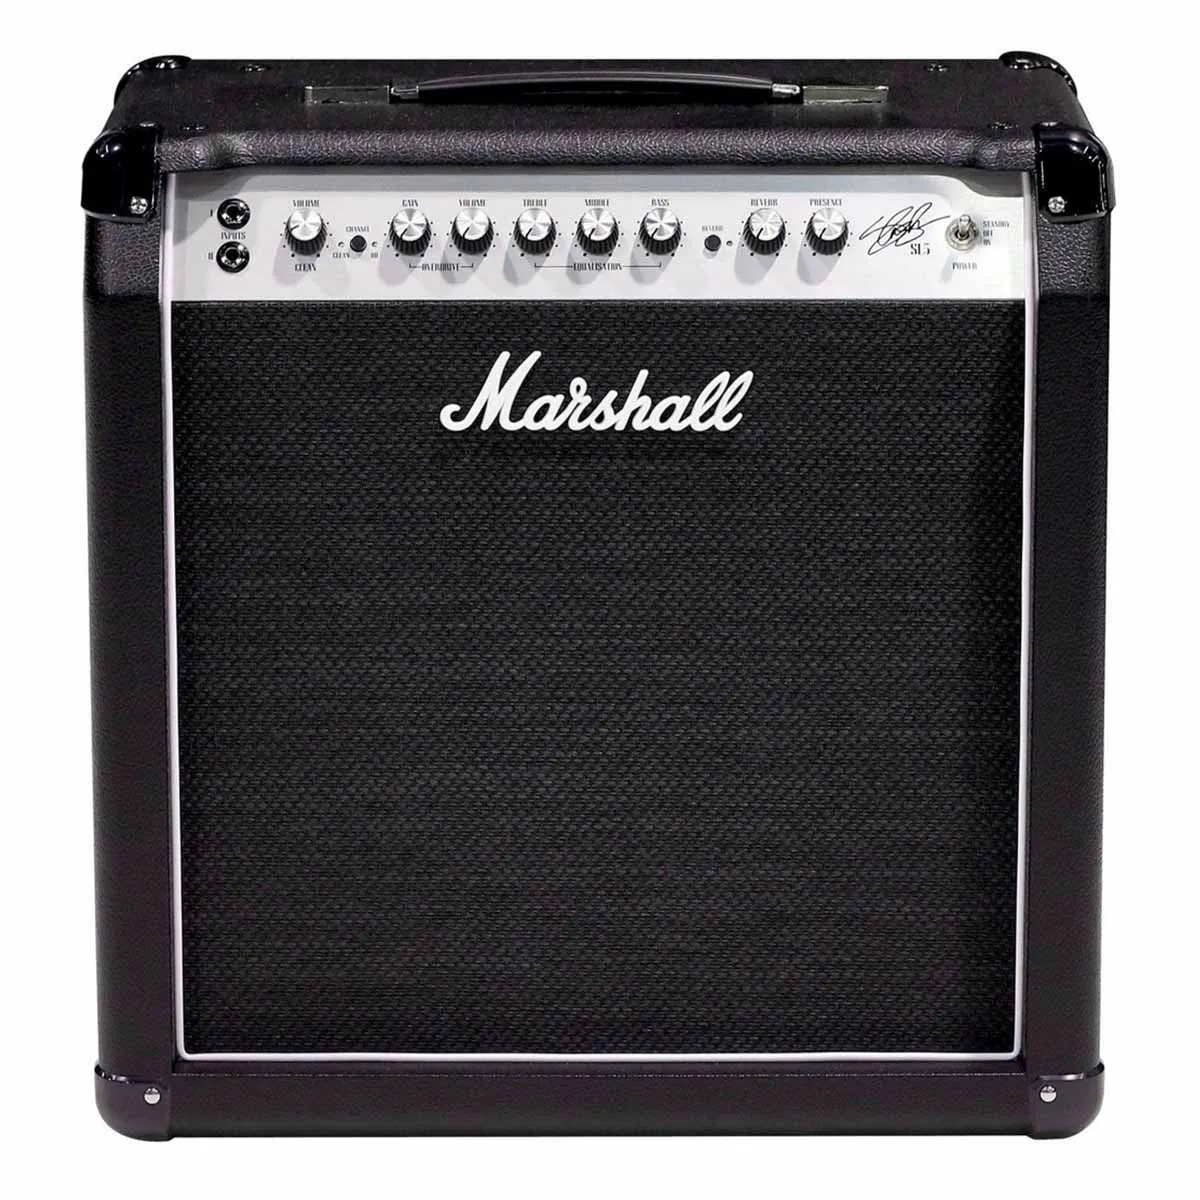 Caixa Amplificada Marshall Slash SL5 Signature para Guitarra